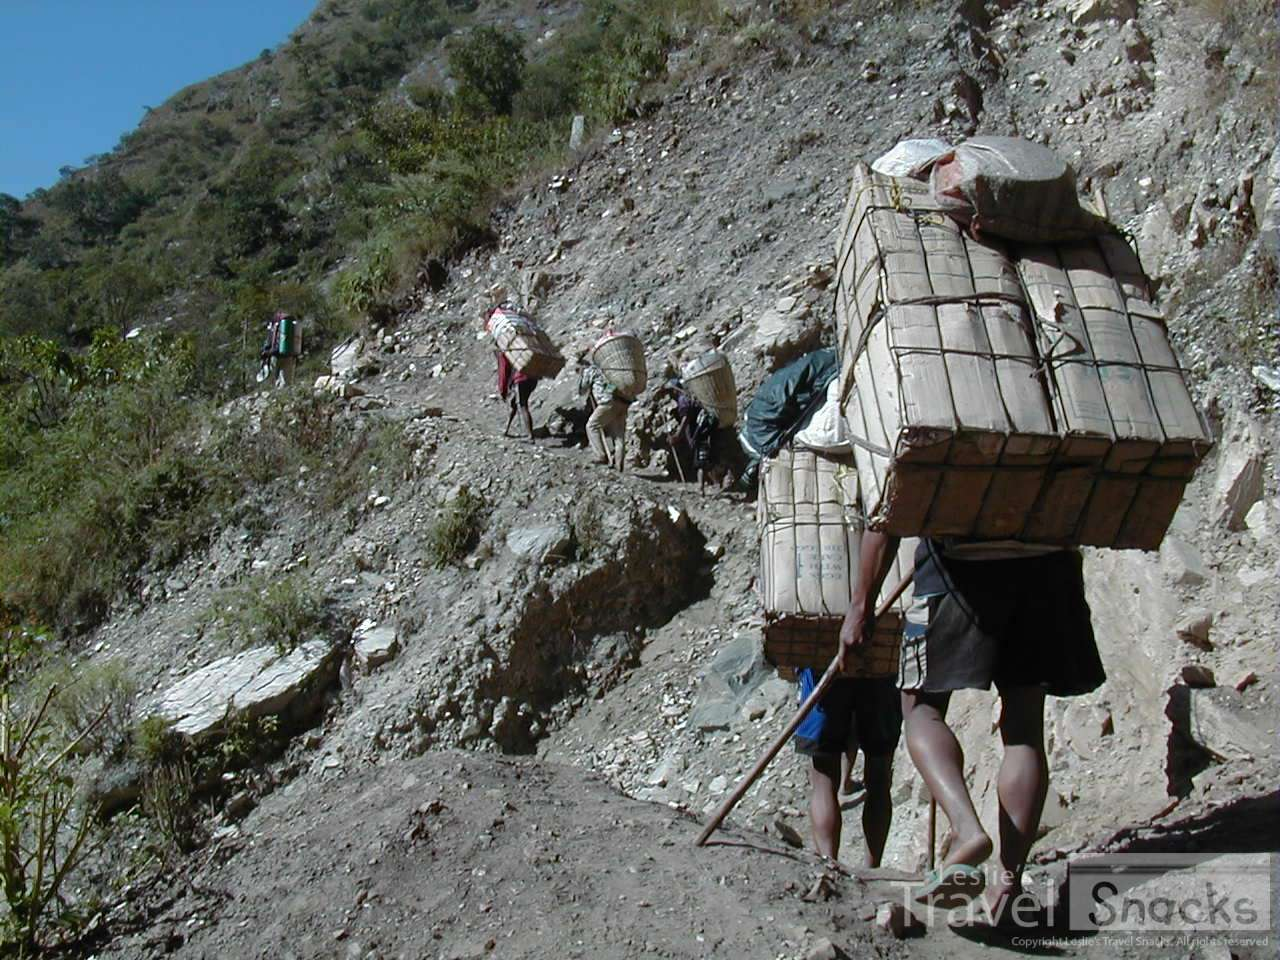 These guys carry heavy loads strapped to their foreheads along dirt paths in nothing but rubber flip flops.